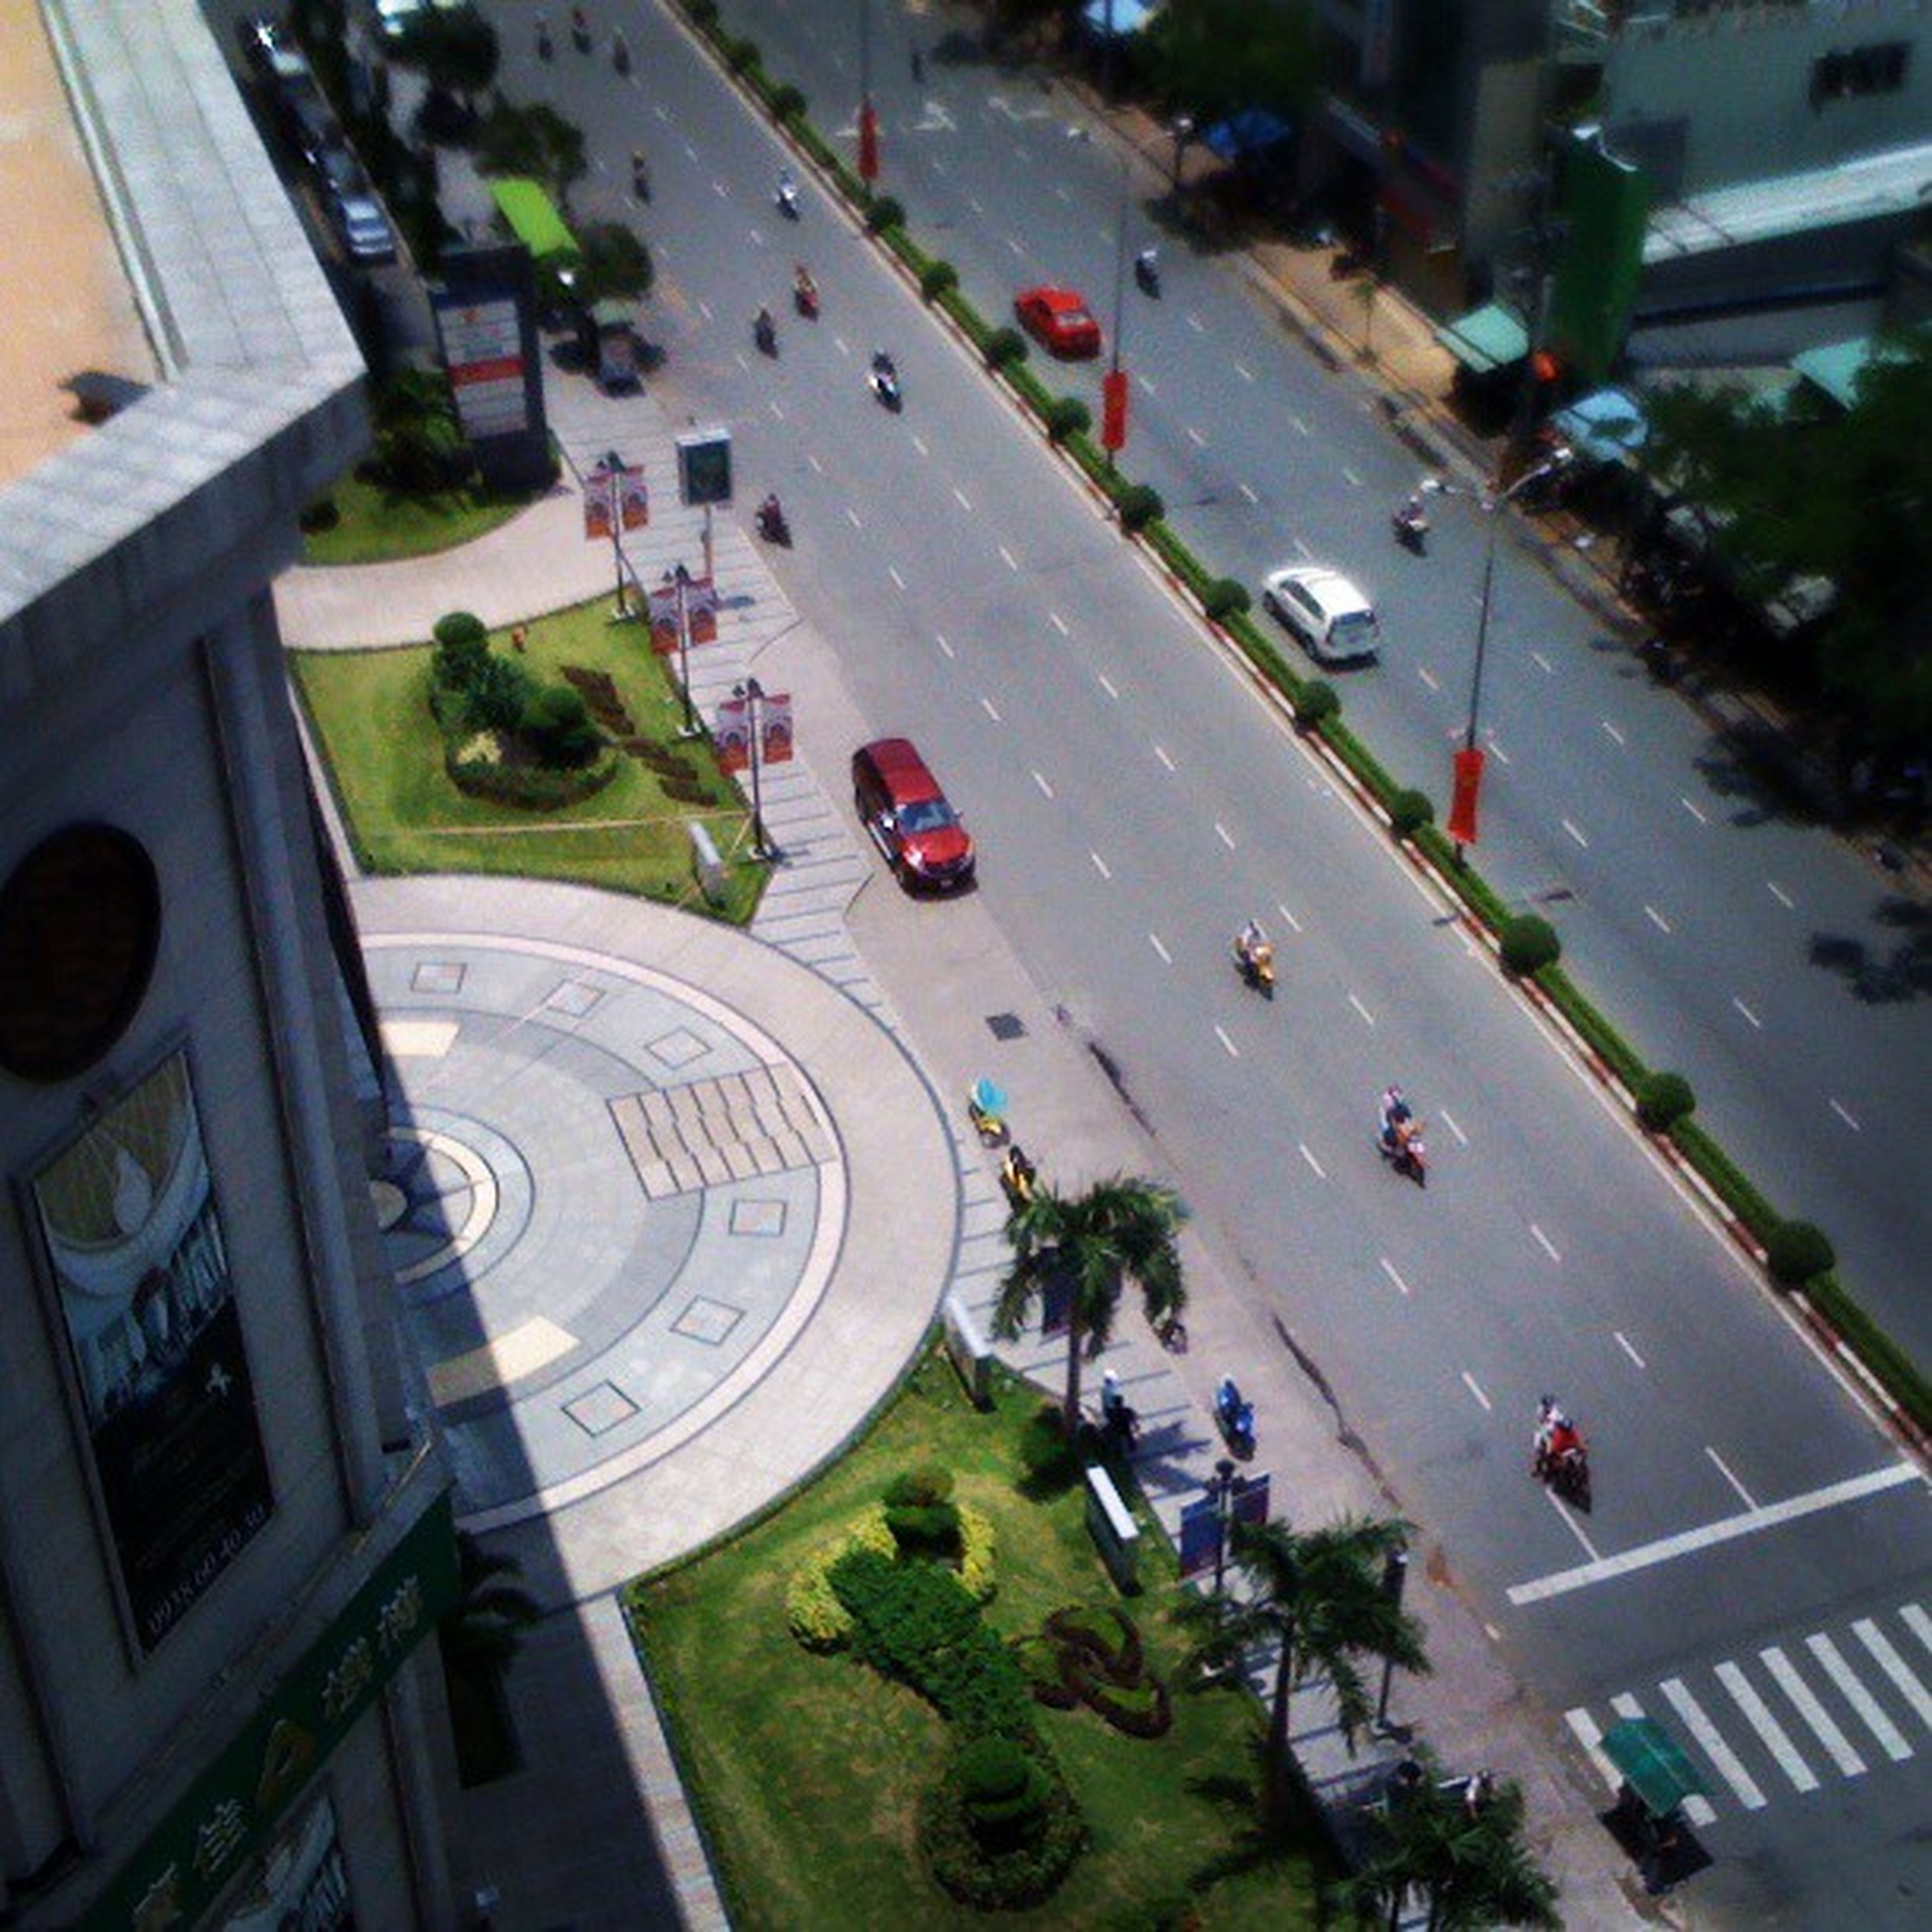 transportation, land vehicle, car, mode of transport, street, high angle view, city, road, city life, architecture, city street, large group of people, building exterior, built structure, road marking, travel, traffic, incidental people, tree